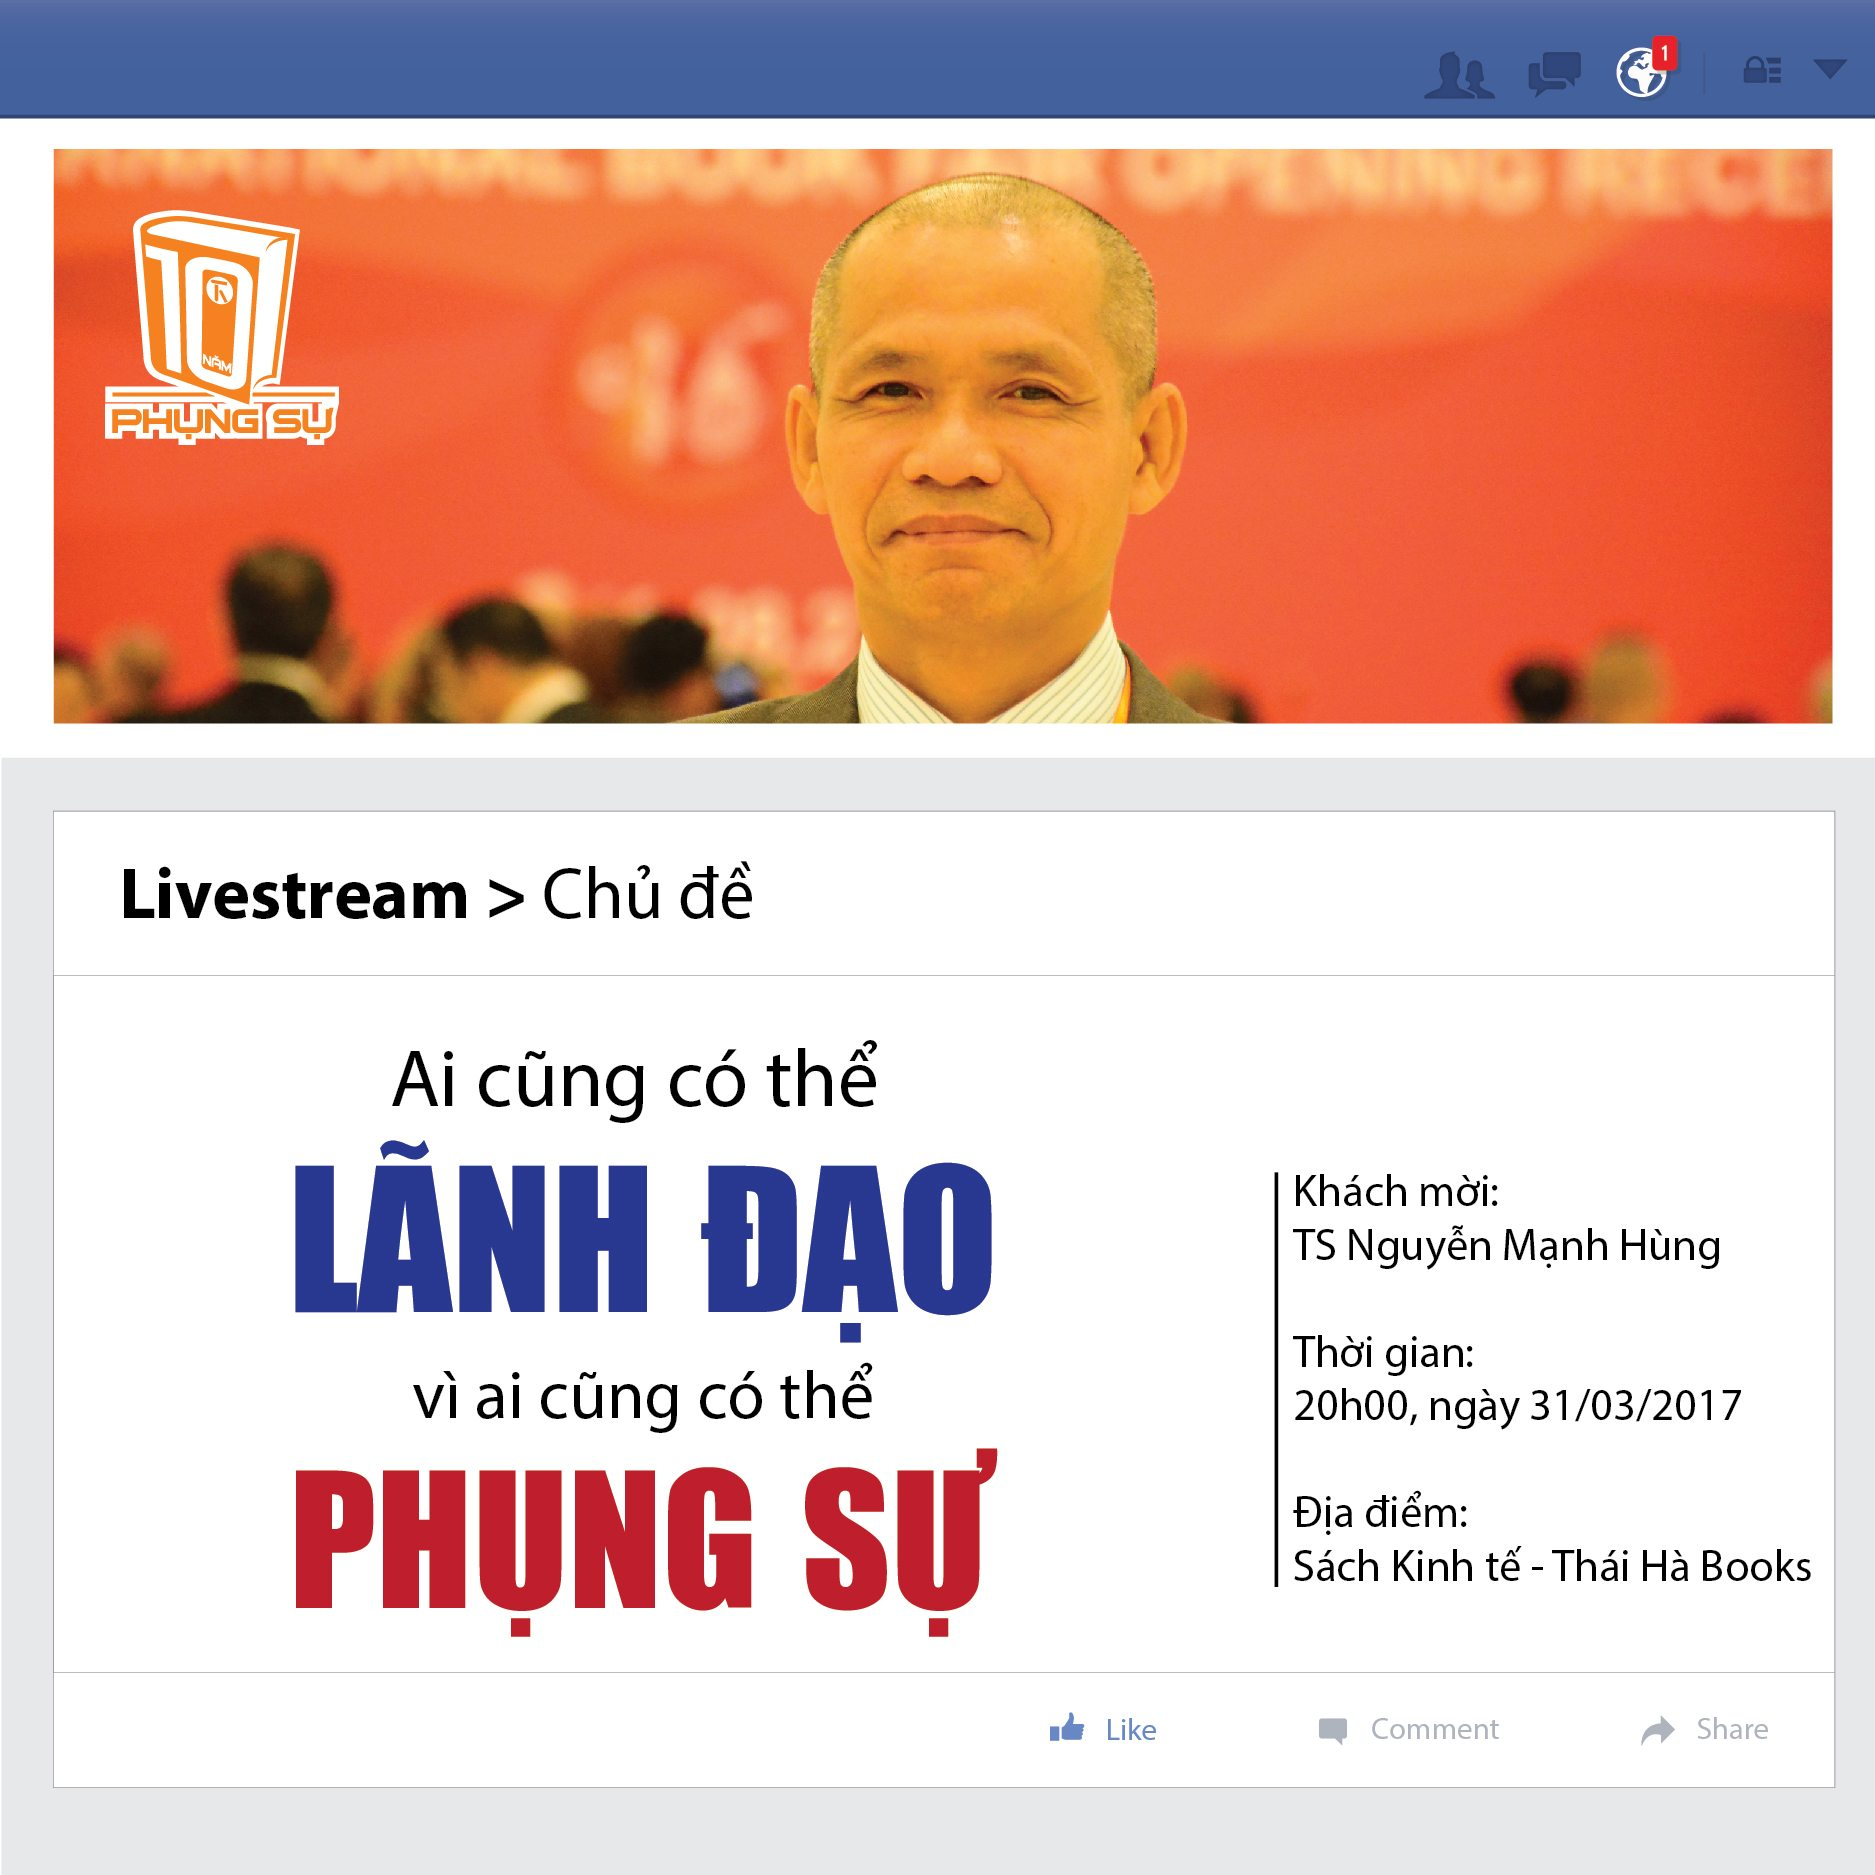 banner_ai-cung-co-the-la-lanh-dao-03